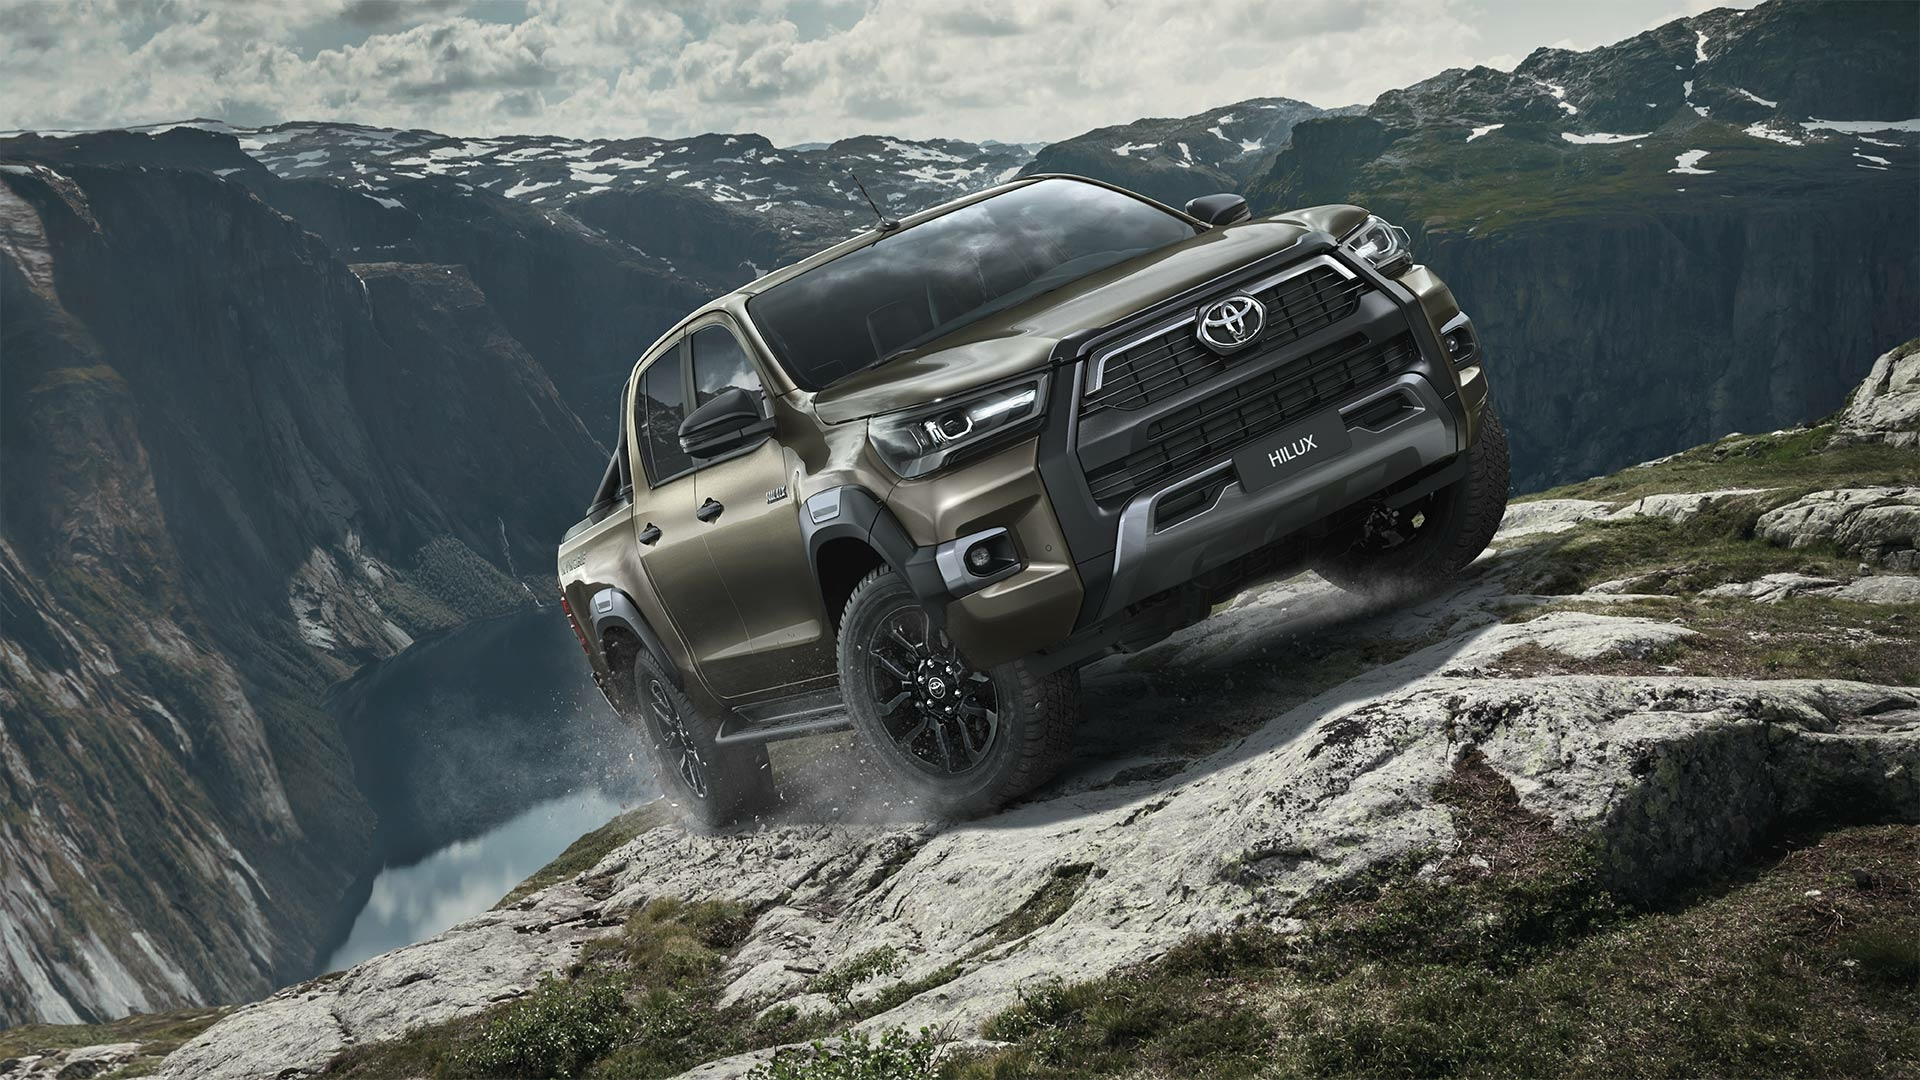 toyota_hilux_2020_gallery_01_full_tcm_3046_2017440_01